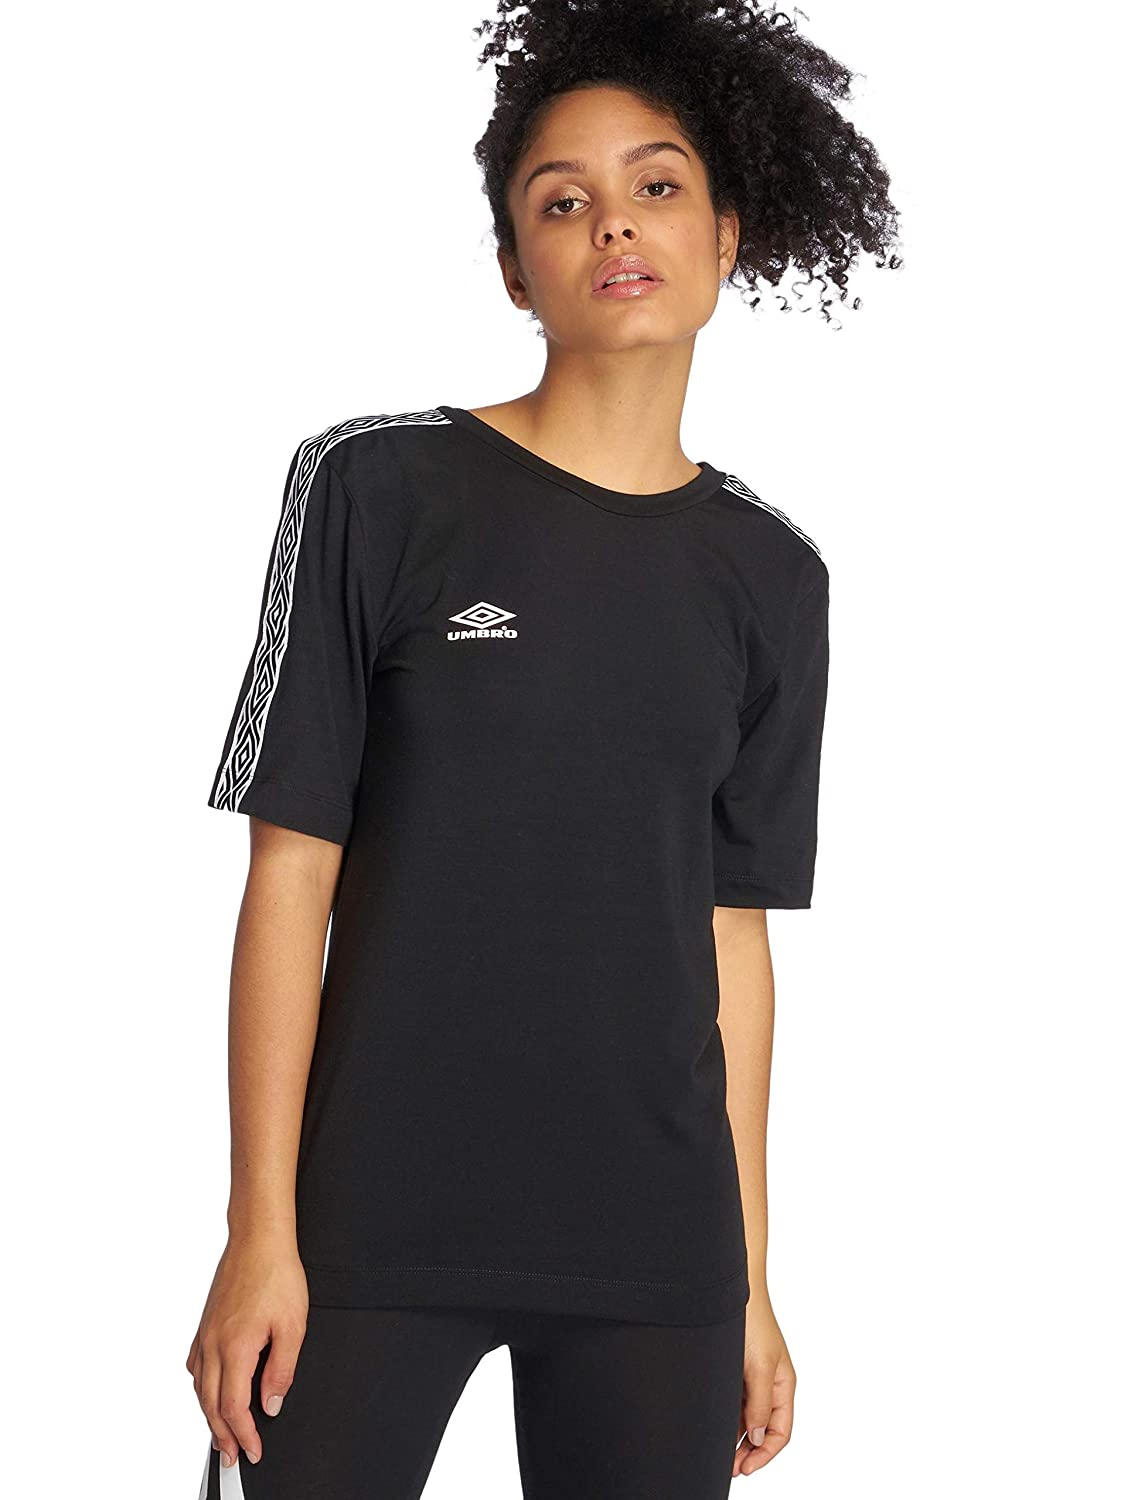 Umbro Mujeres Camisetas Scoop